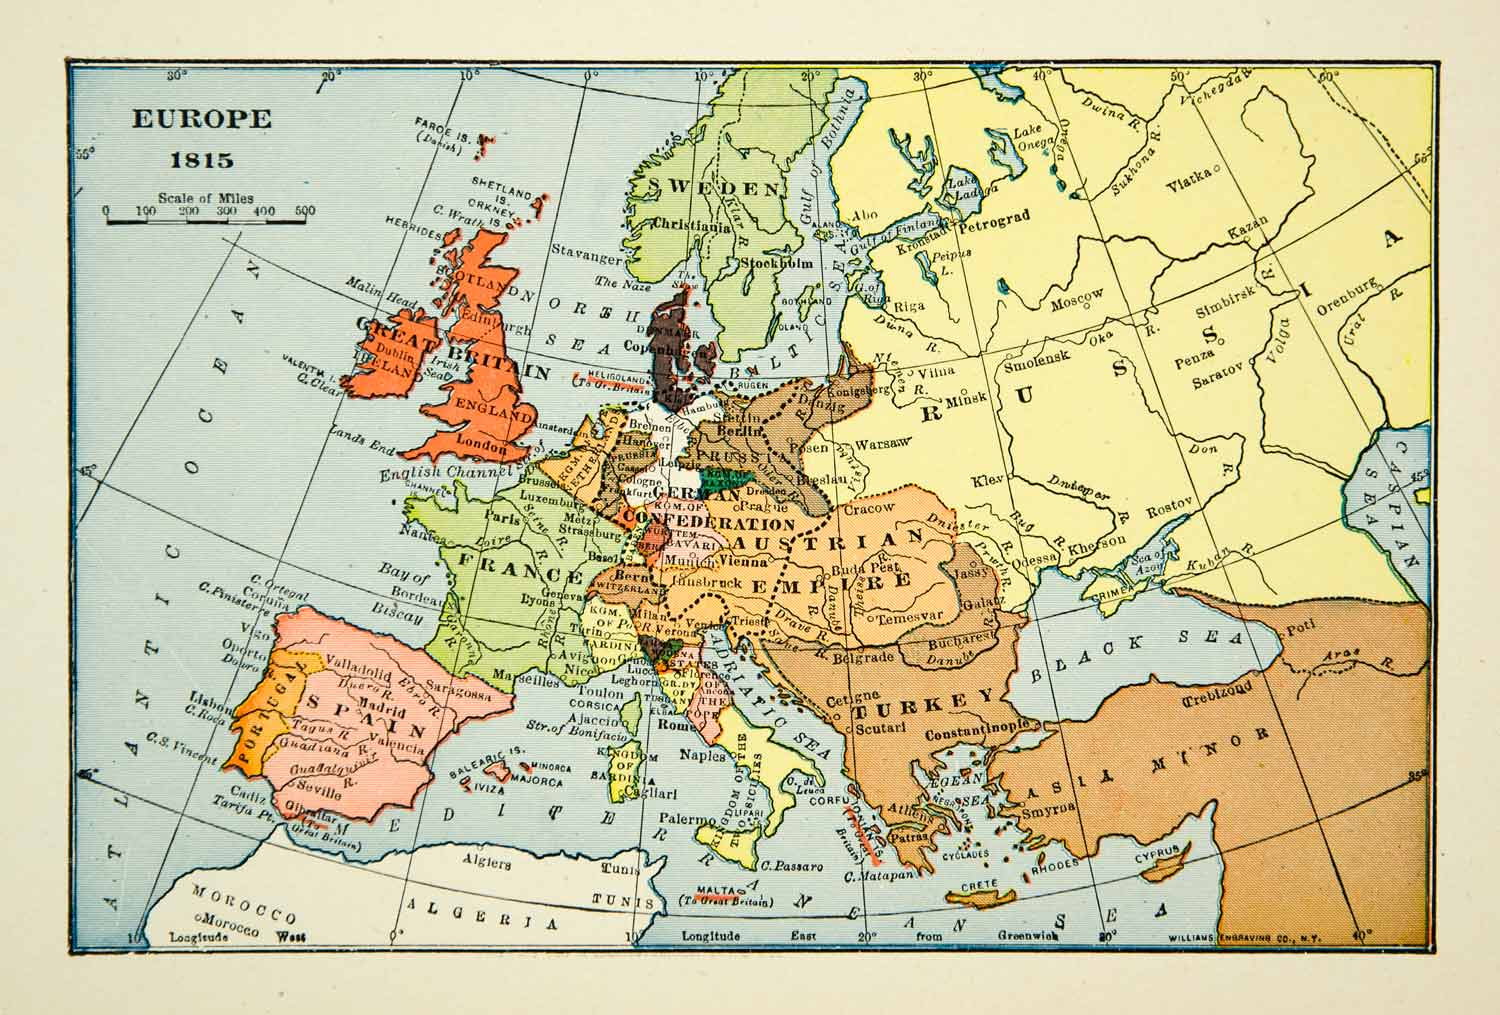 Map Of Europe France.1939 Print Map Europe Turkey Russia France 19th Century Great Britain Xena9